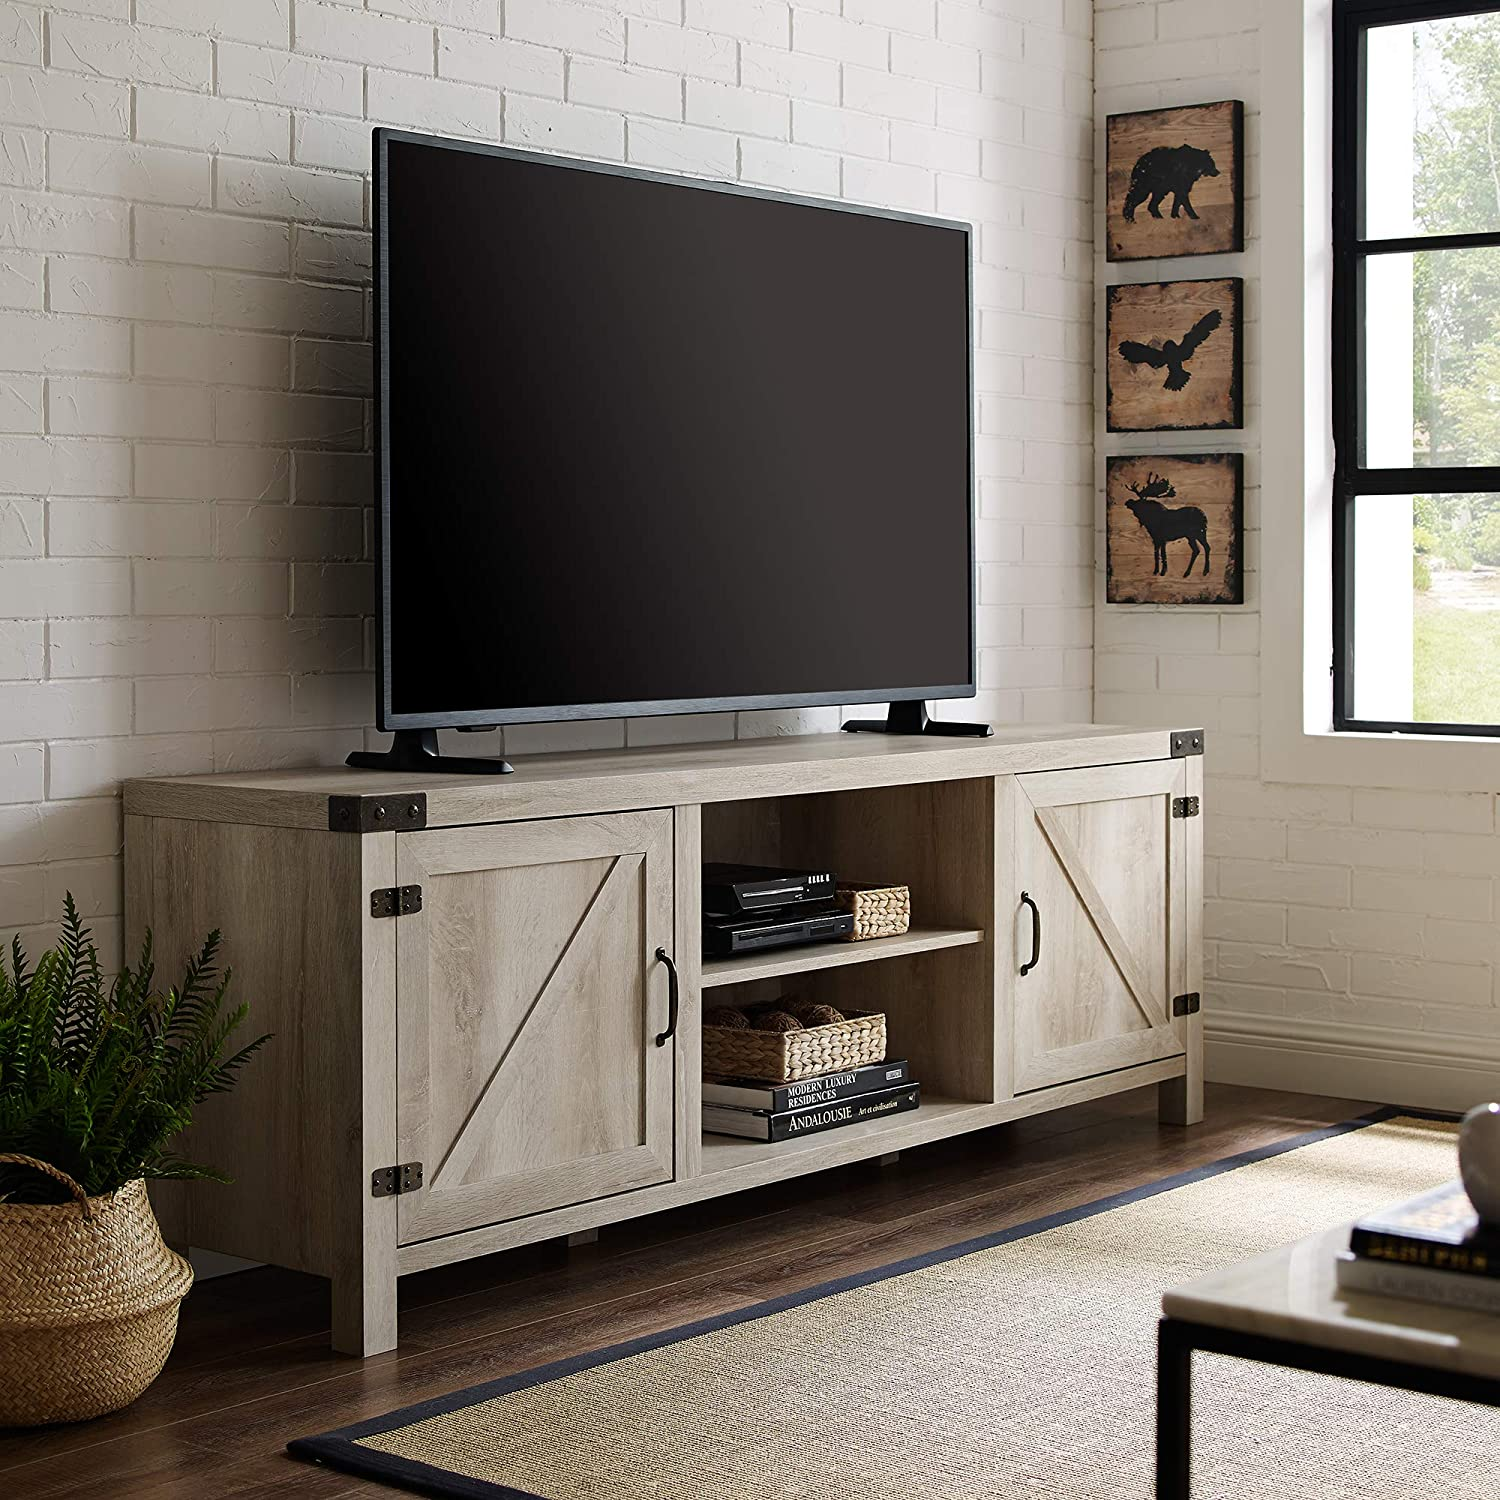 The Best Tv Stands To House Your Home Entertainment Bob Vila